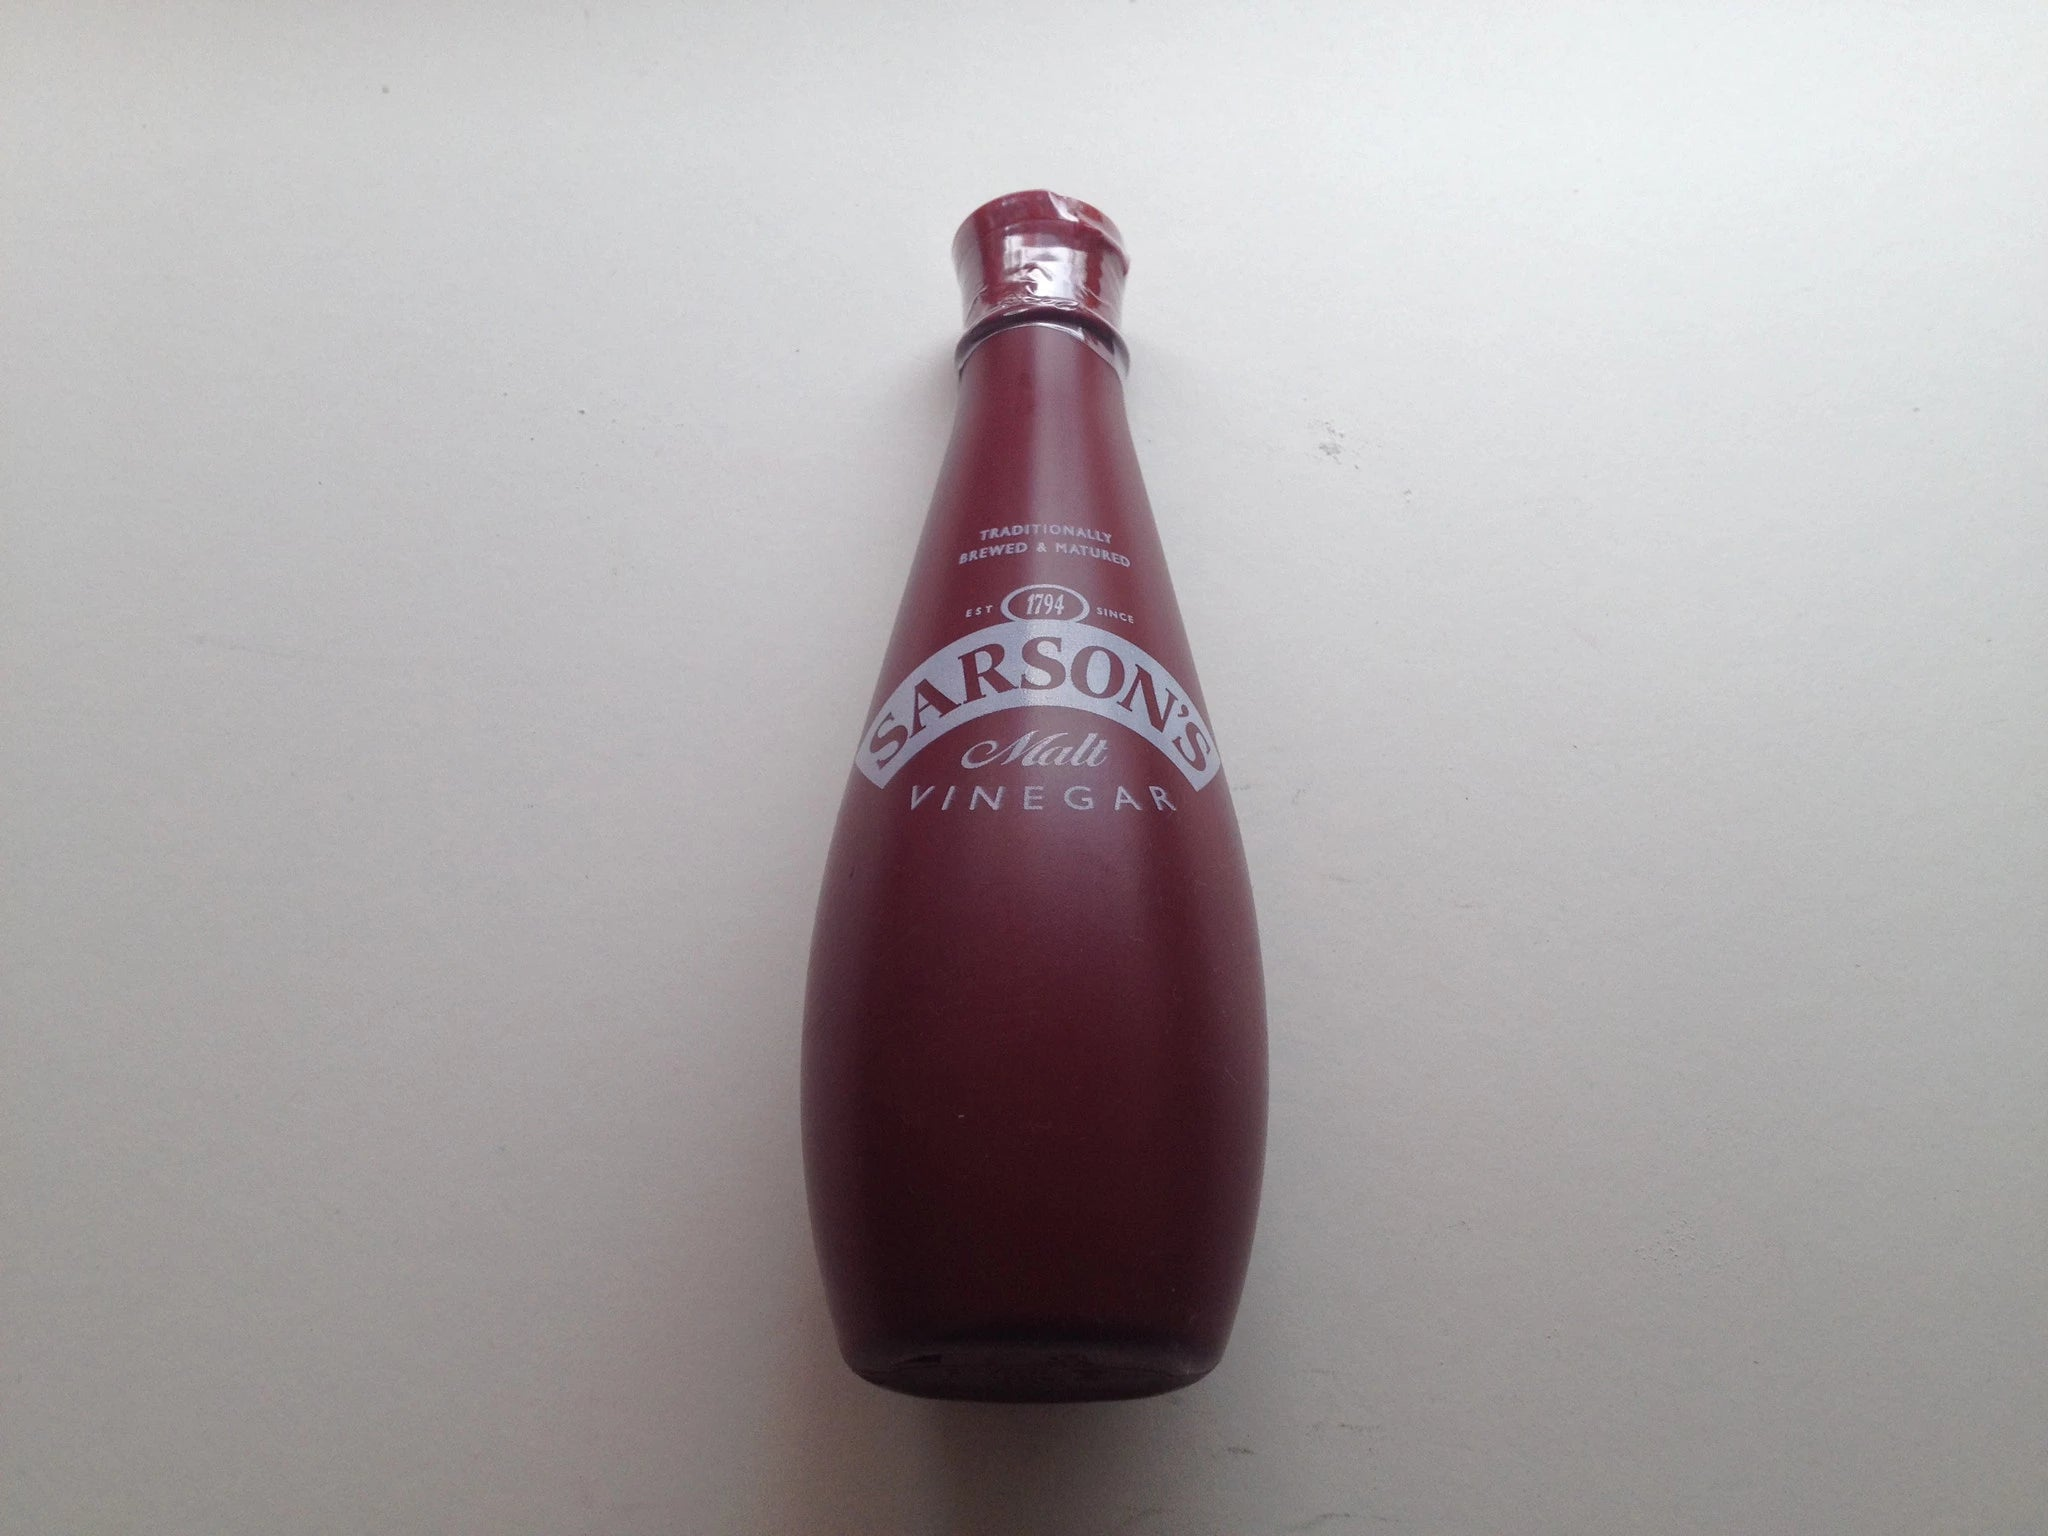 Sarson's Malt Vinegar Plastic bottle 300ML